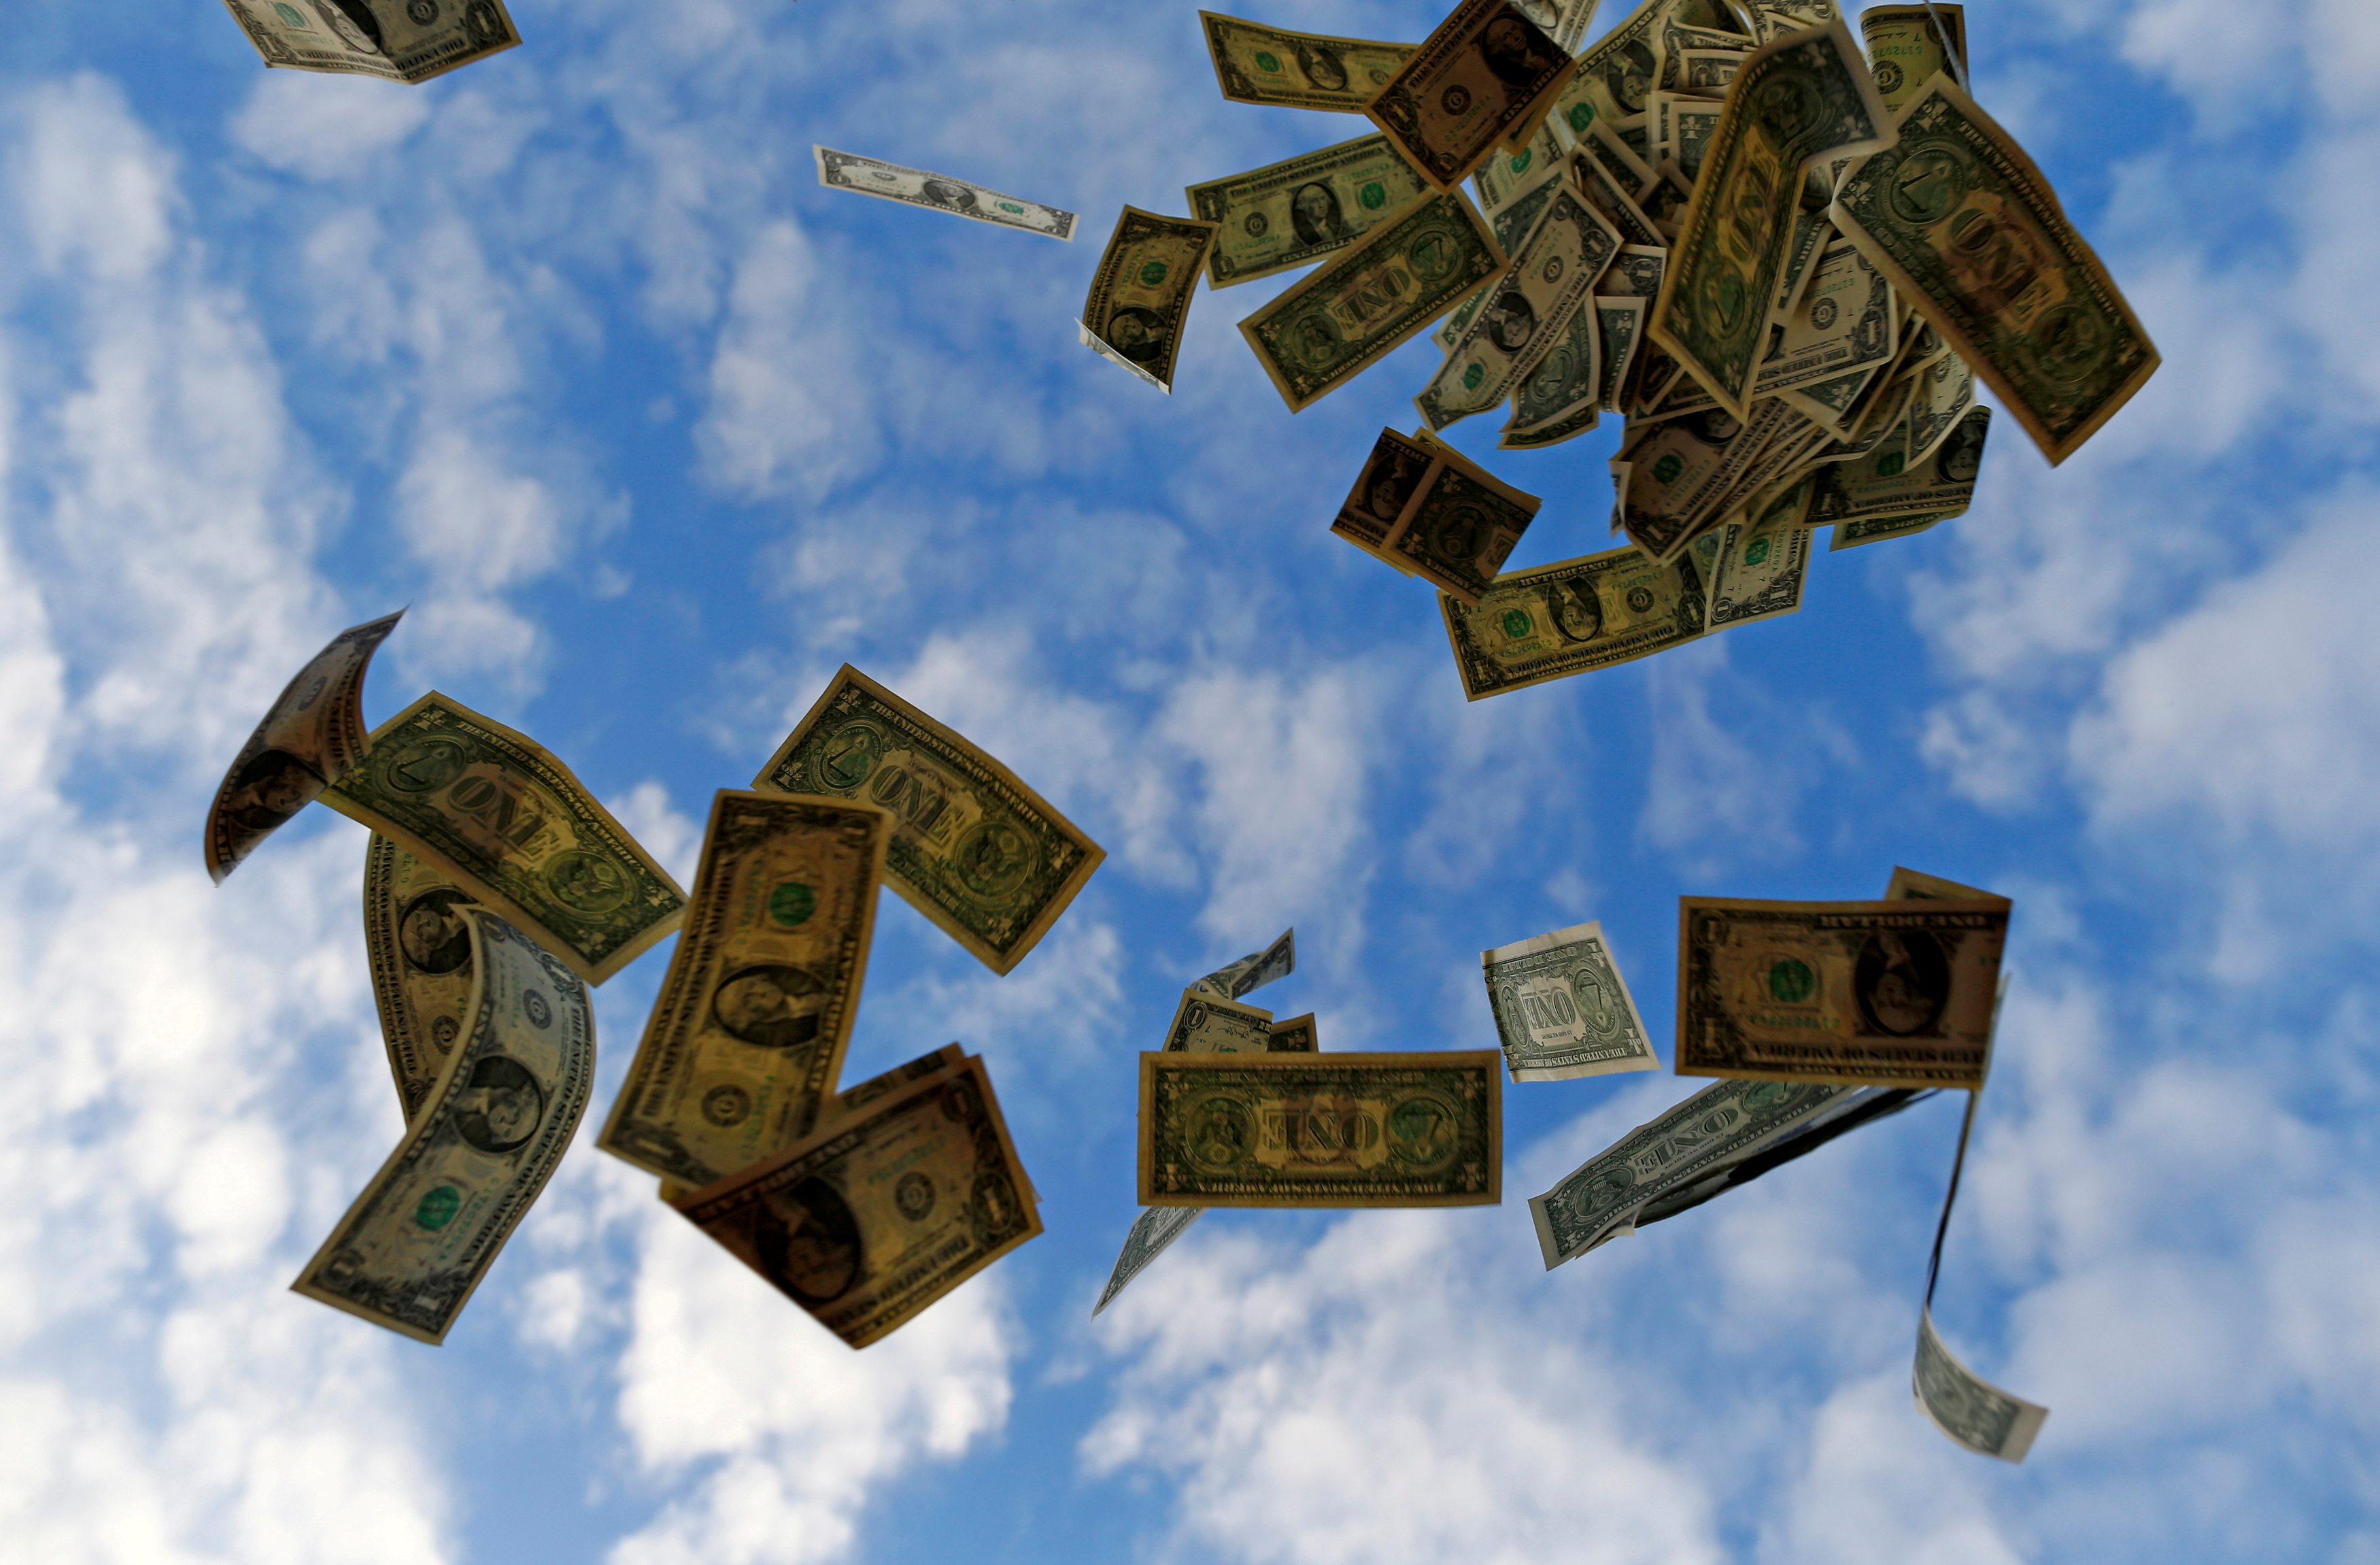 U.S. dollar bills blow near the Andalusian capital of Seville  in this photo illustration taken on November 16, 2014.  REUTERS/Marcelo Del Pozo/File Photo